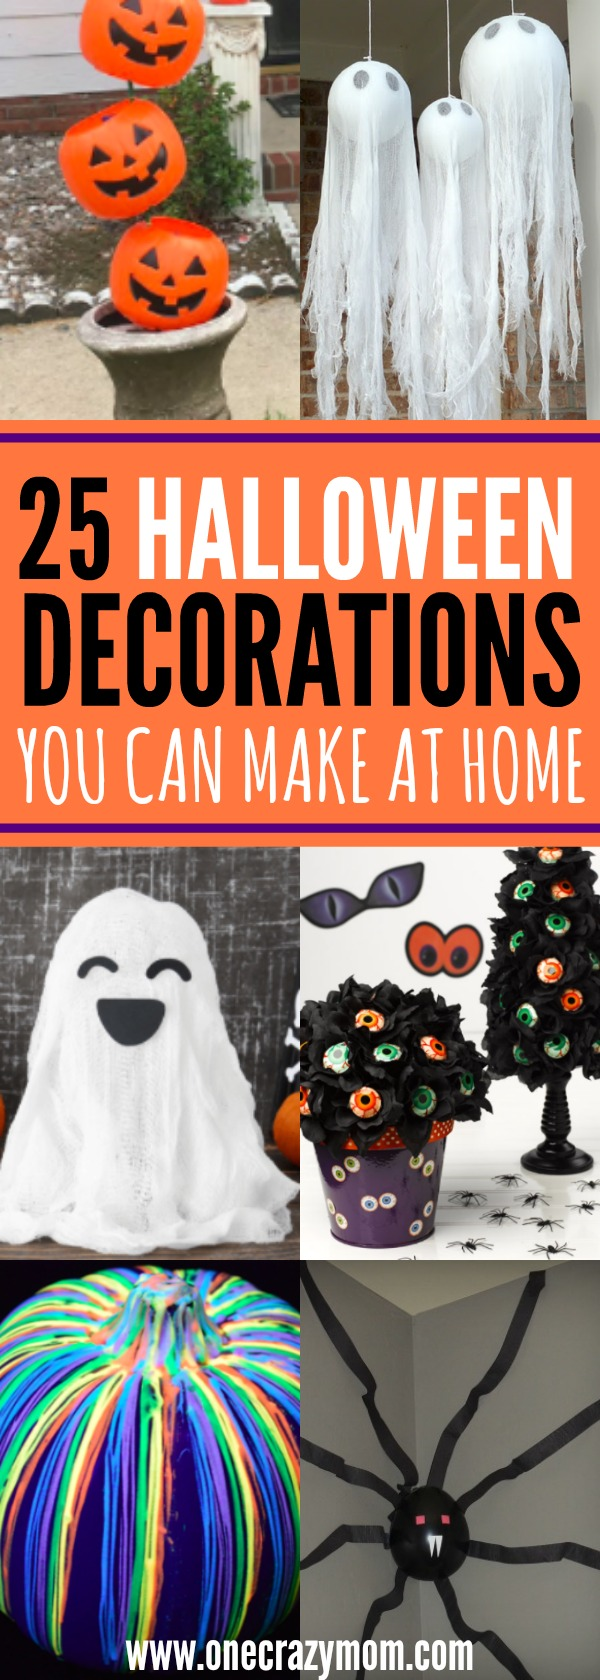 halloween decorations that you can make at home stunning